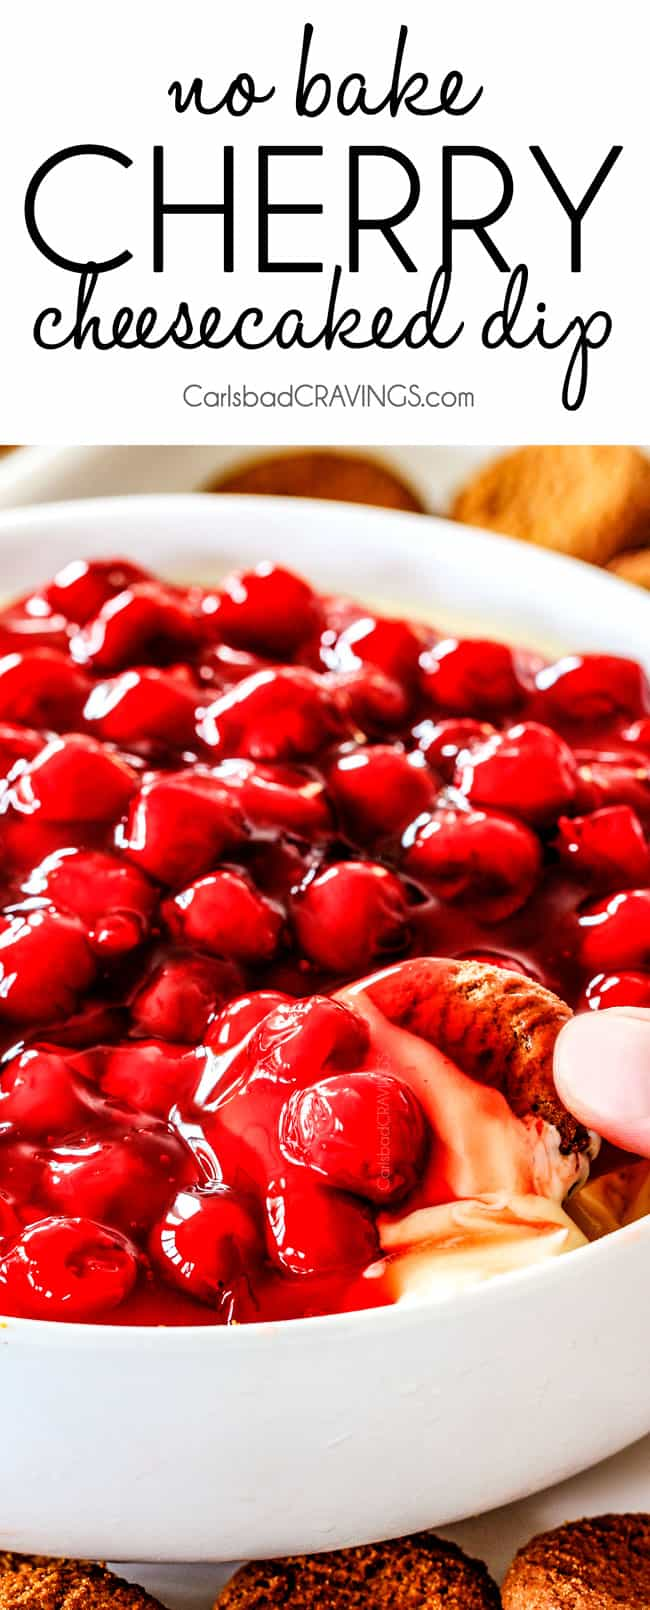 Easy, creamy NO BAKE Cherry Cheesecake Dip is one of the easiest AND most delicious desserts/appetizers that comes together in minutes! The perfect make ahead, stress free, crowd pleaser for all your holiday parties!